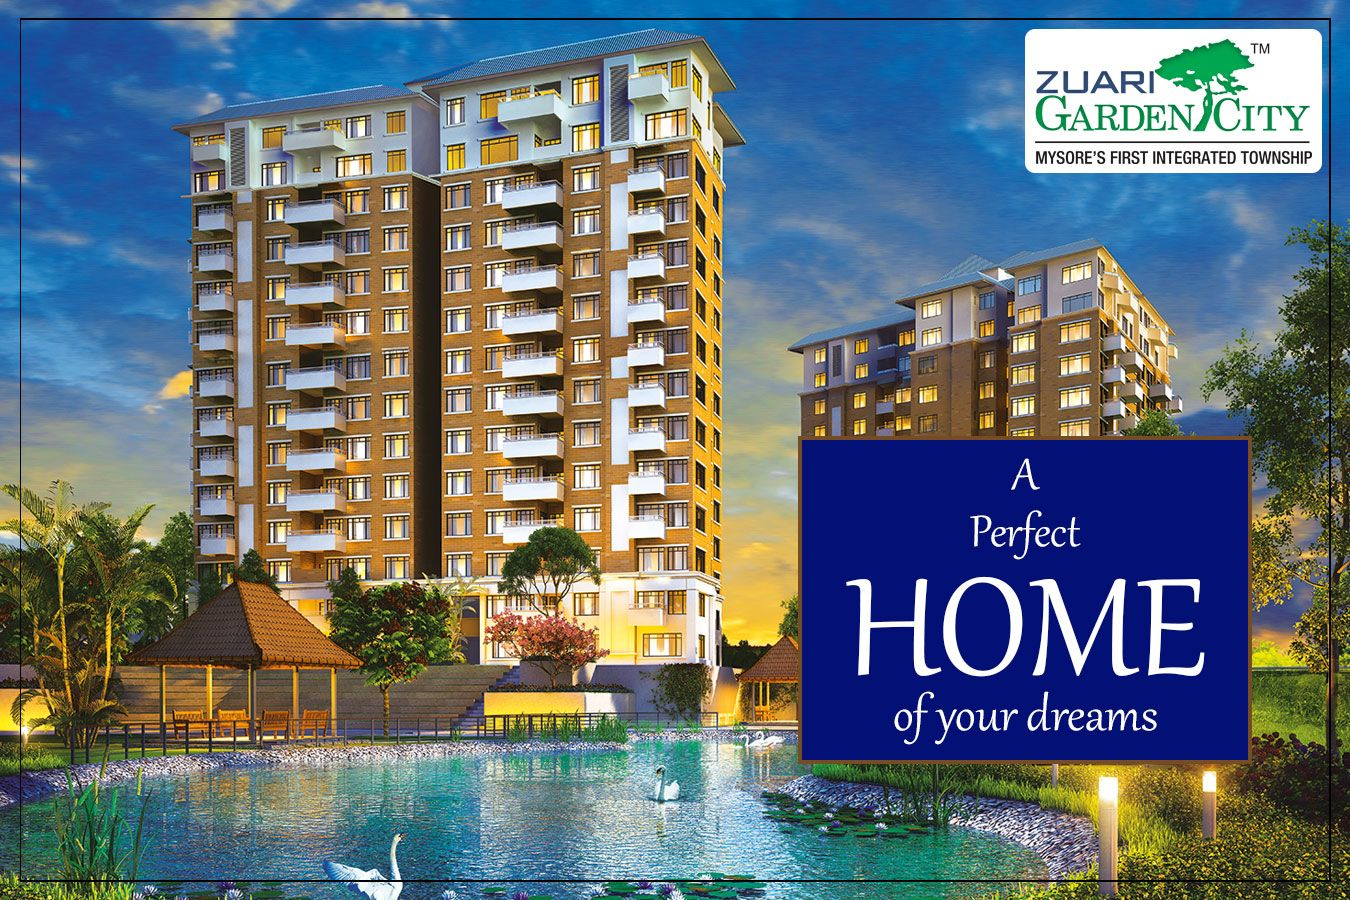 Witness The Sheer Luxury Of Relaxation And Much More Zuarigardencity Mysore 2 3 4 Bhk Apartments Marked With Internat Garden City Mysore Best Architects